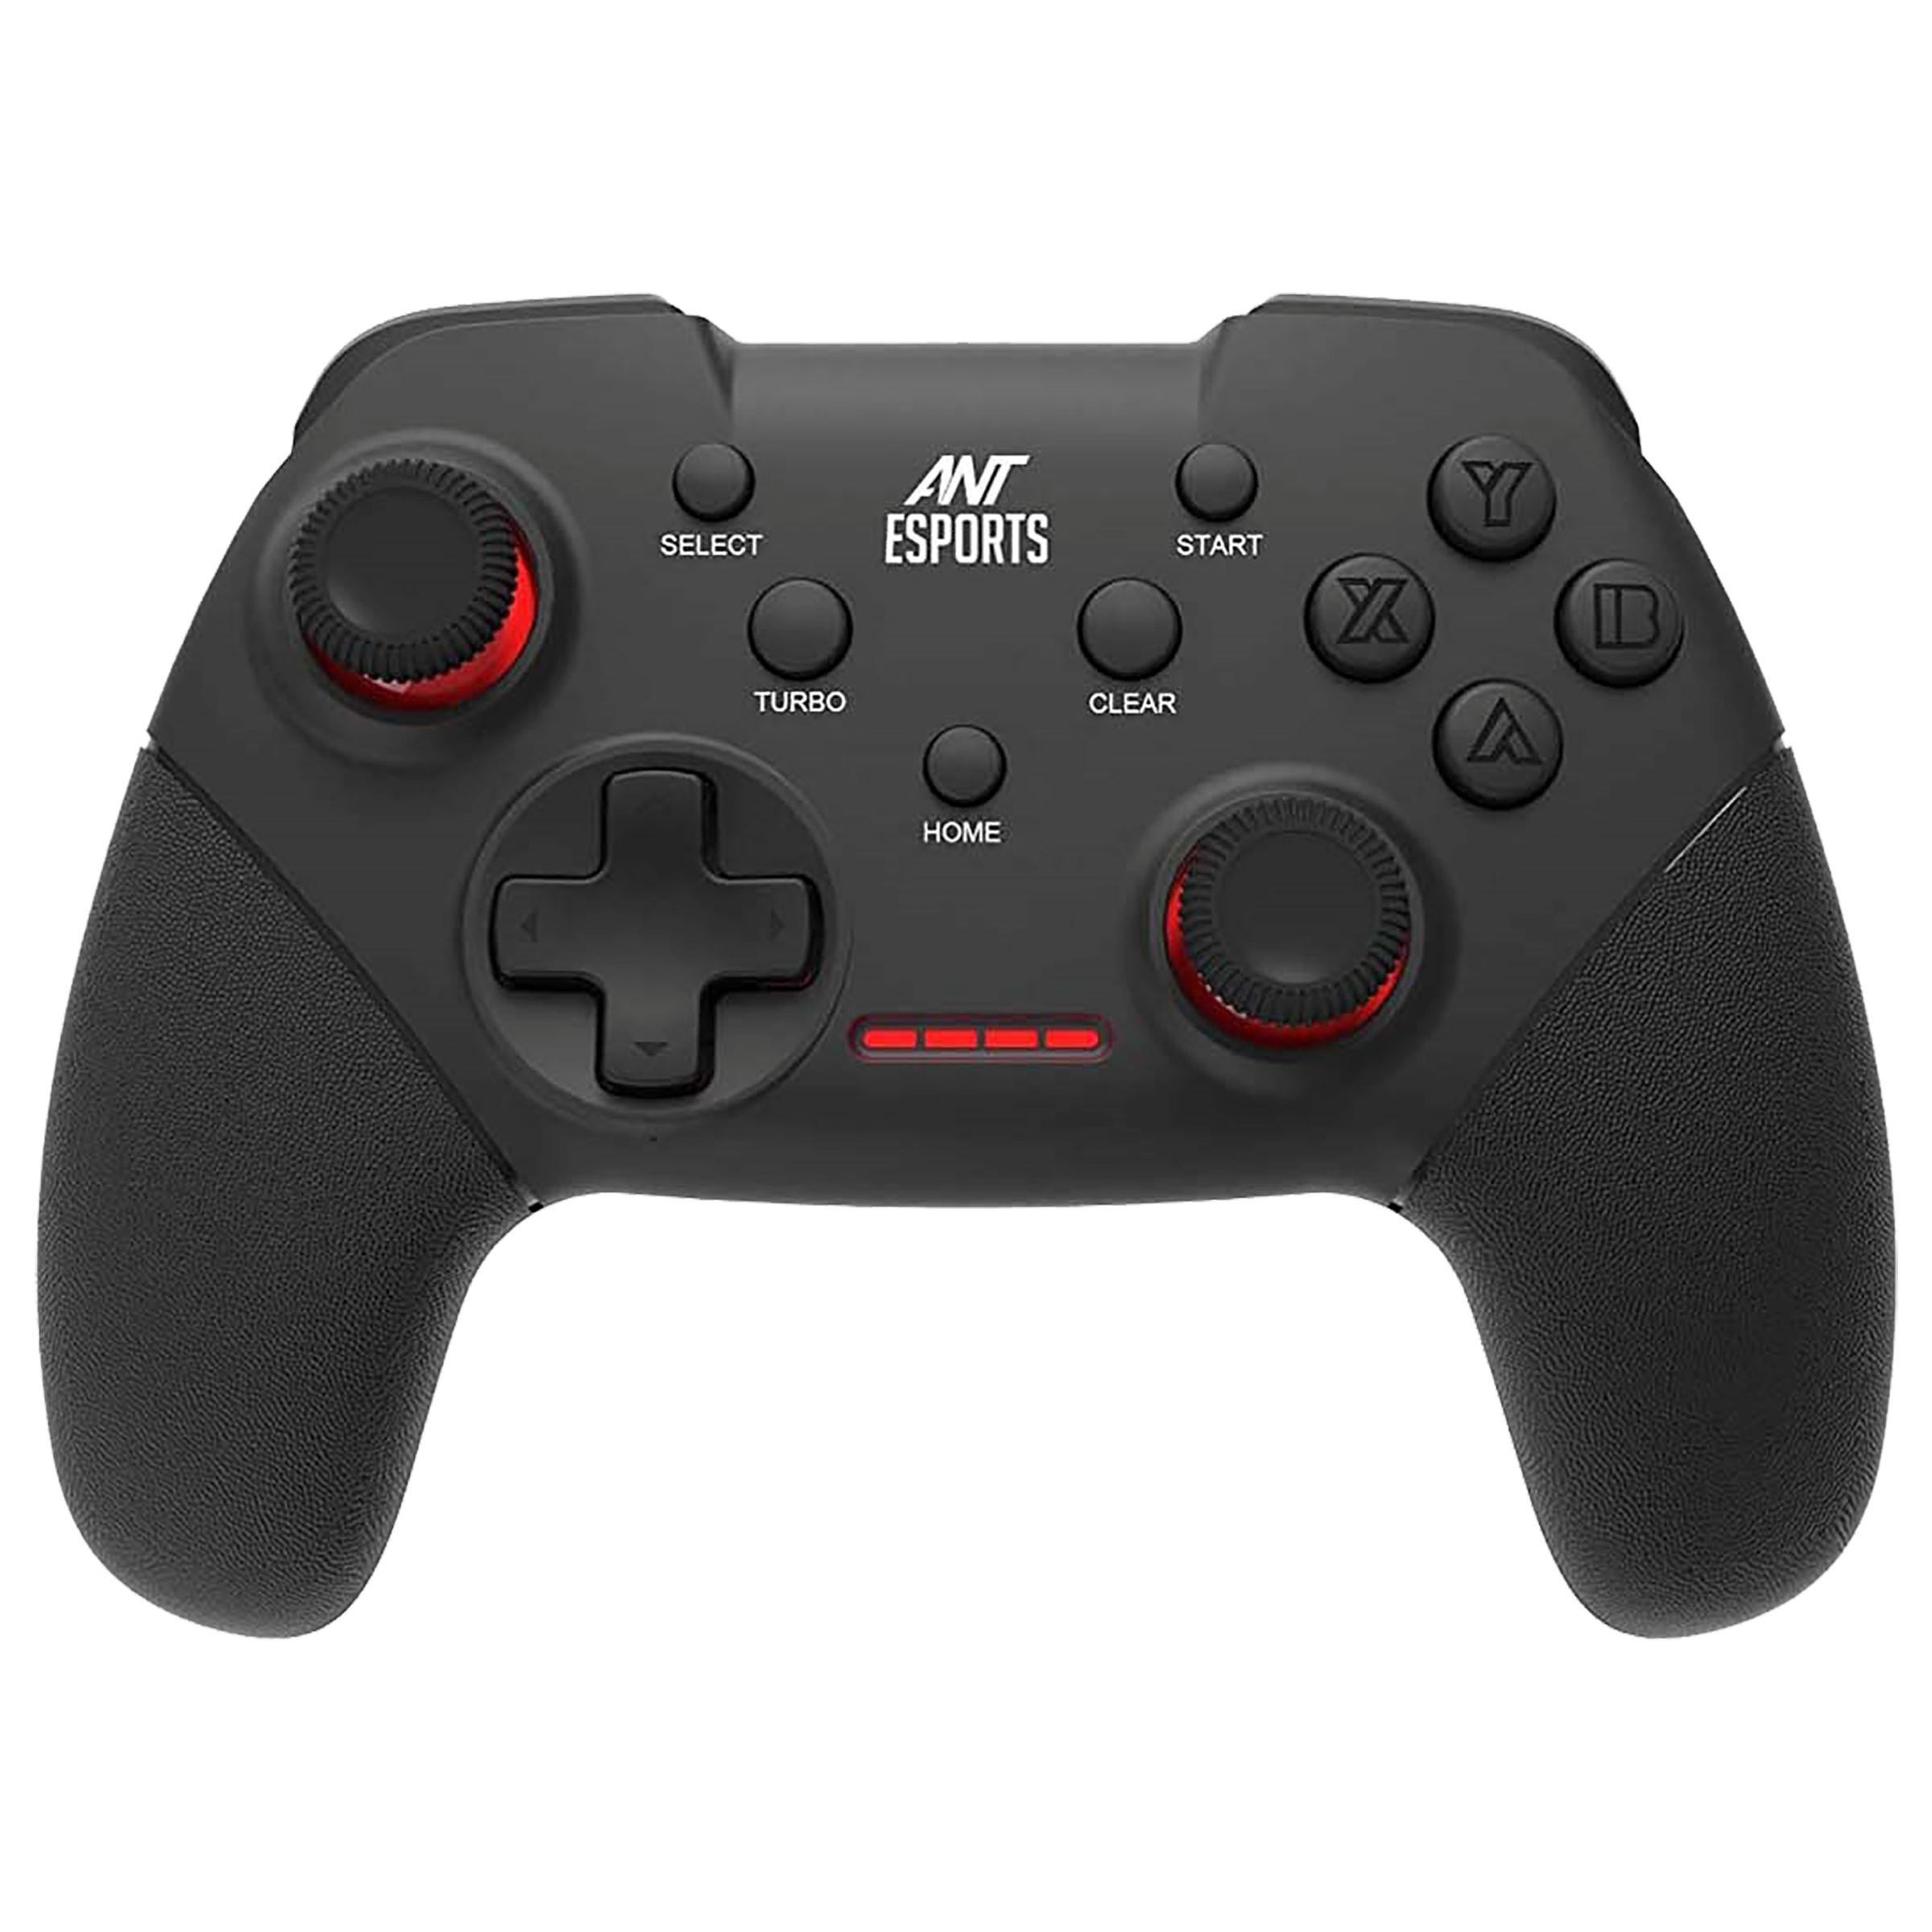 Ant Esports GP300 Pro Wired & Wireless Controller For PS3 / PC / Android / Stem (Excellent Design, Black)_1